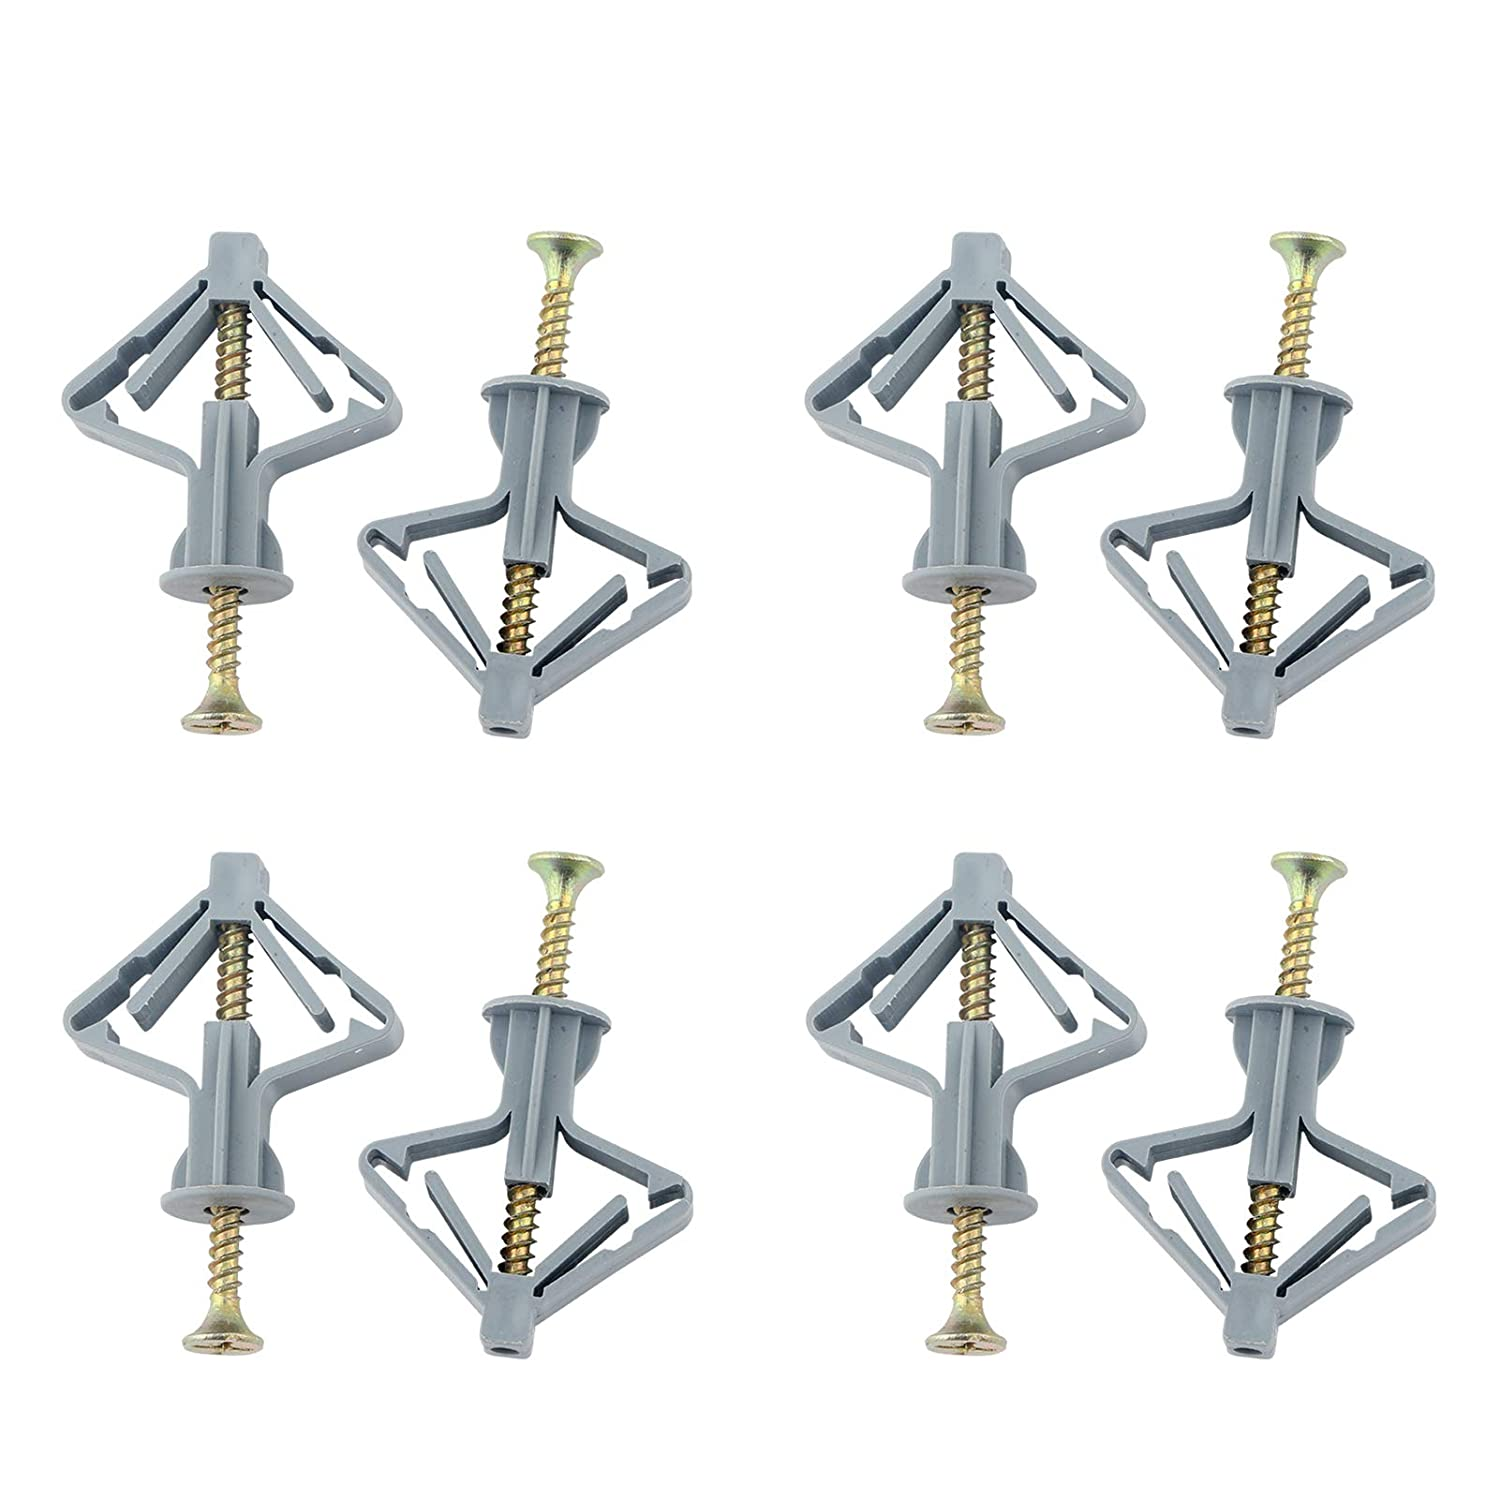 200pcs Drywall Anchor Kit-Hollow Wall Finally resale start Screws Drywa New products, world's highest quality popular! with Anchors